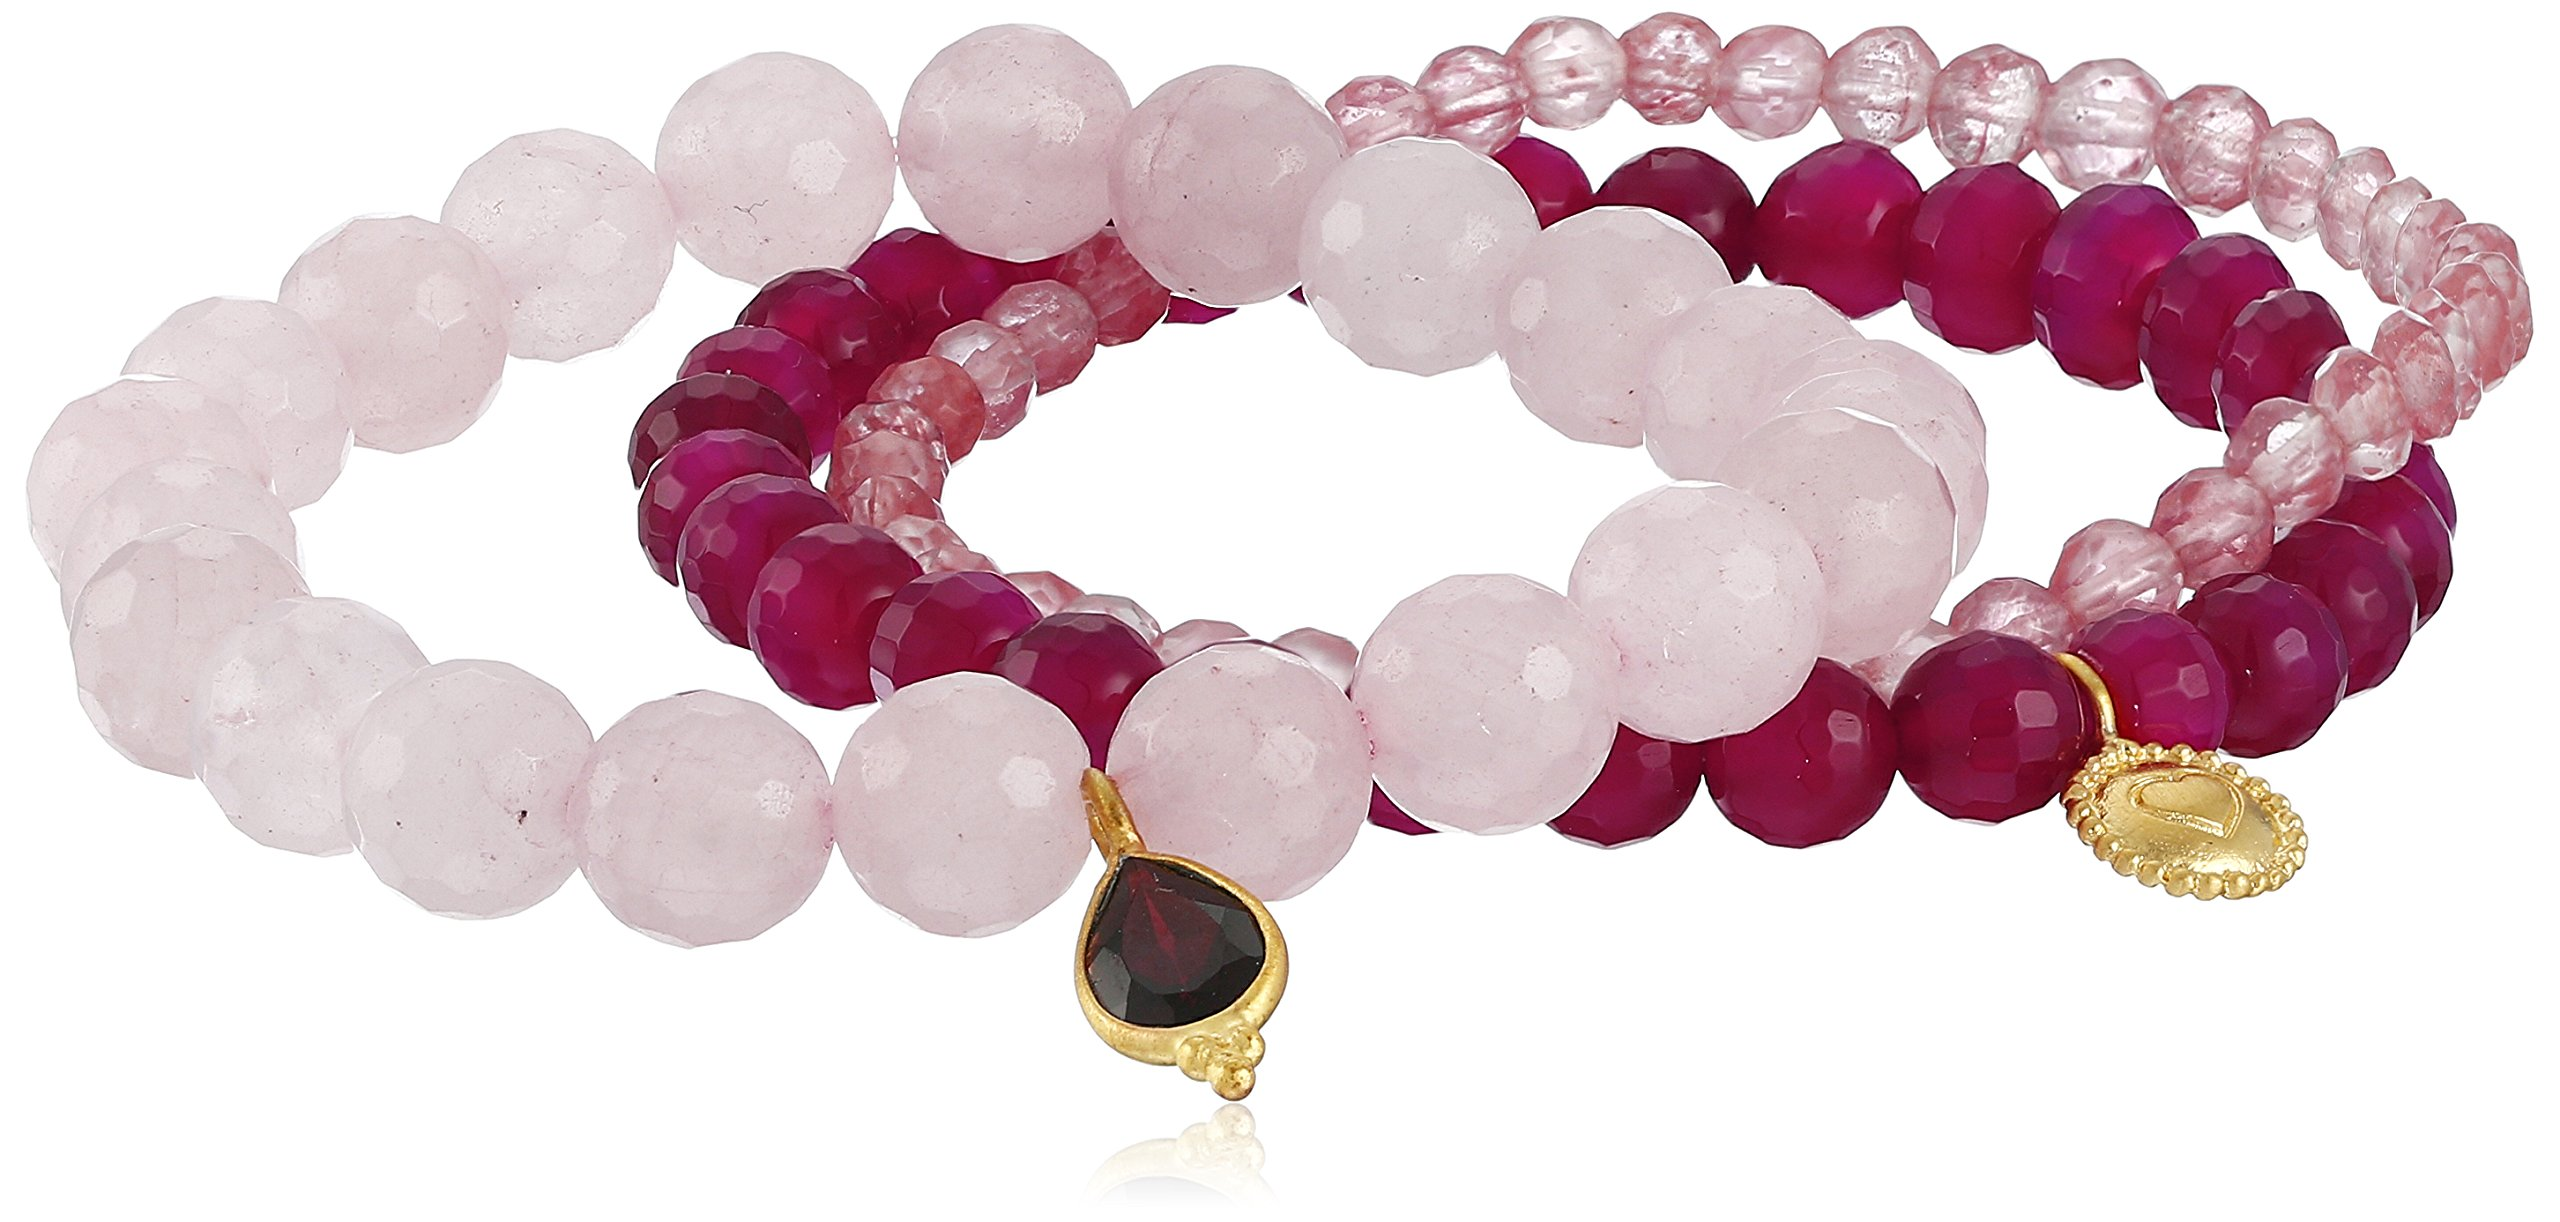 Satya Jewelry New Classics Cherry Quartz, Rose Quartz, and Garnet Loving Energy Stretch Bracelet Set by Satya Jewelry